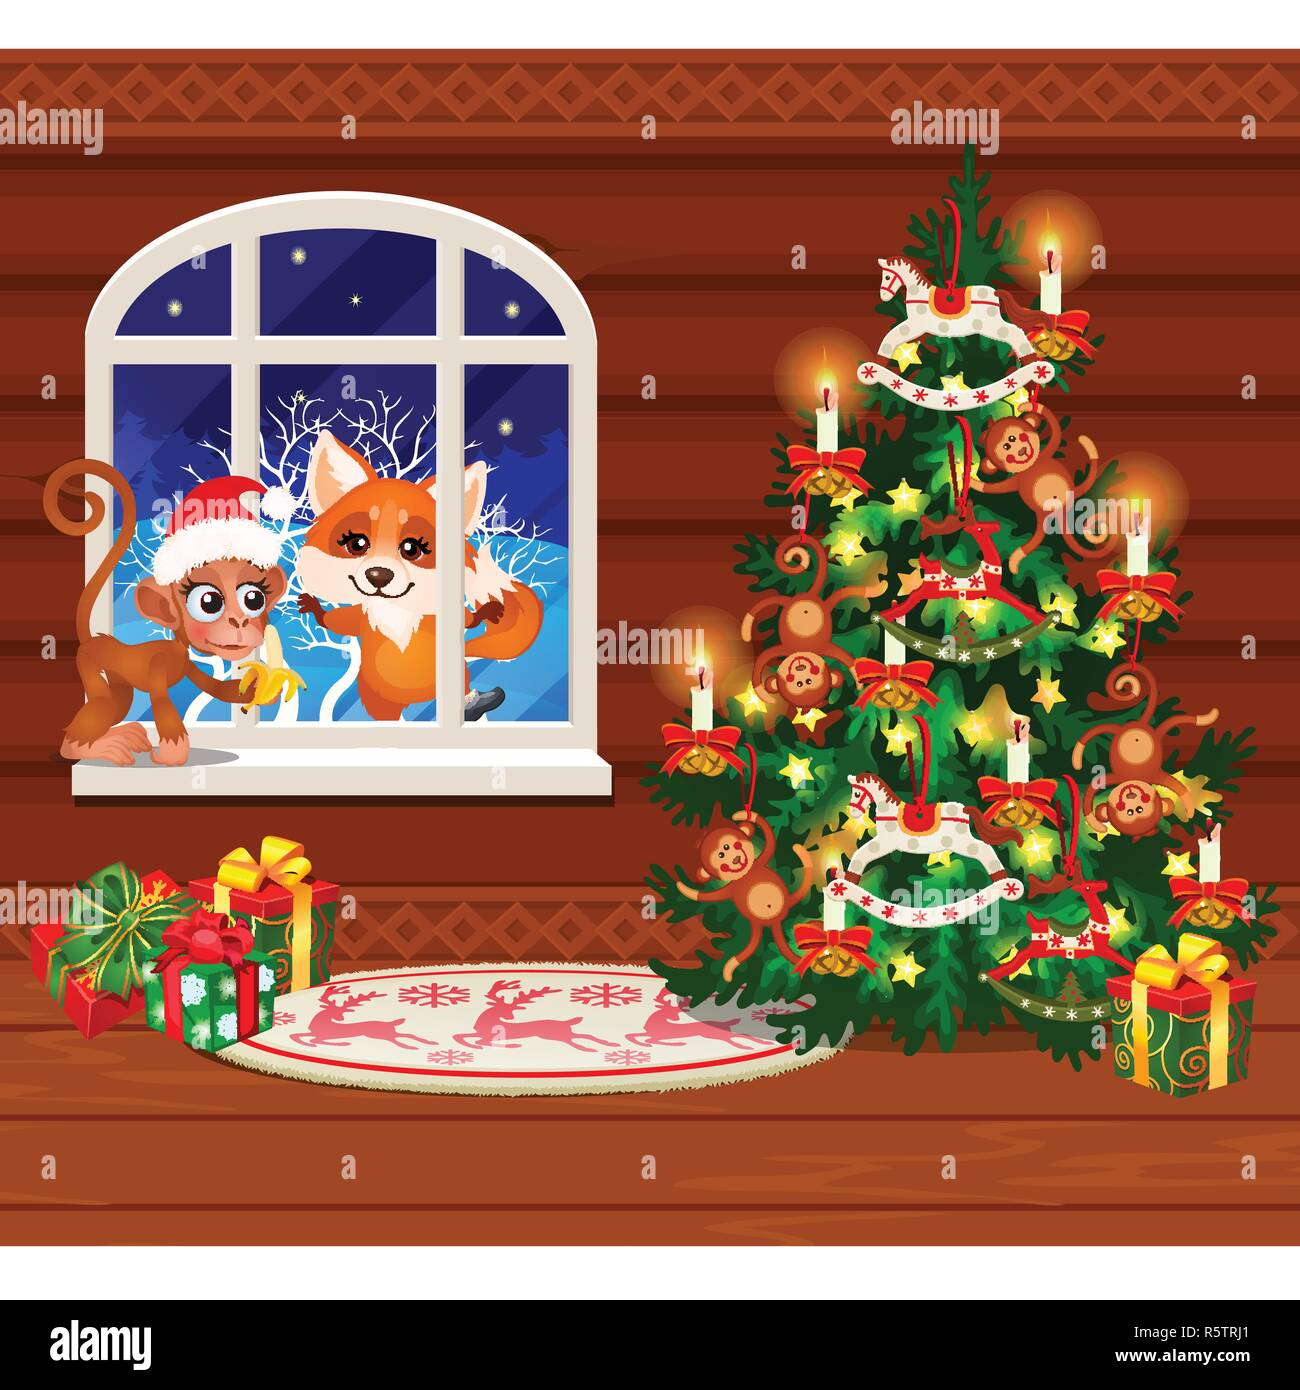 Inside The Old Cozy Wooden Village House Home Furnishings Christmas Tree With Gift Boxes Sketch Of Festive Poster Party Invitation Other Holiday Card Vector Cartoon Close Up Illustration Stock Vector Image Art